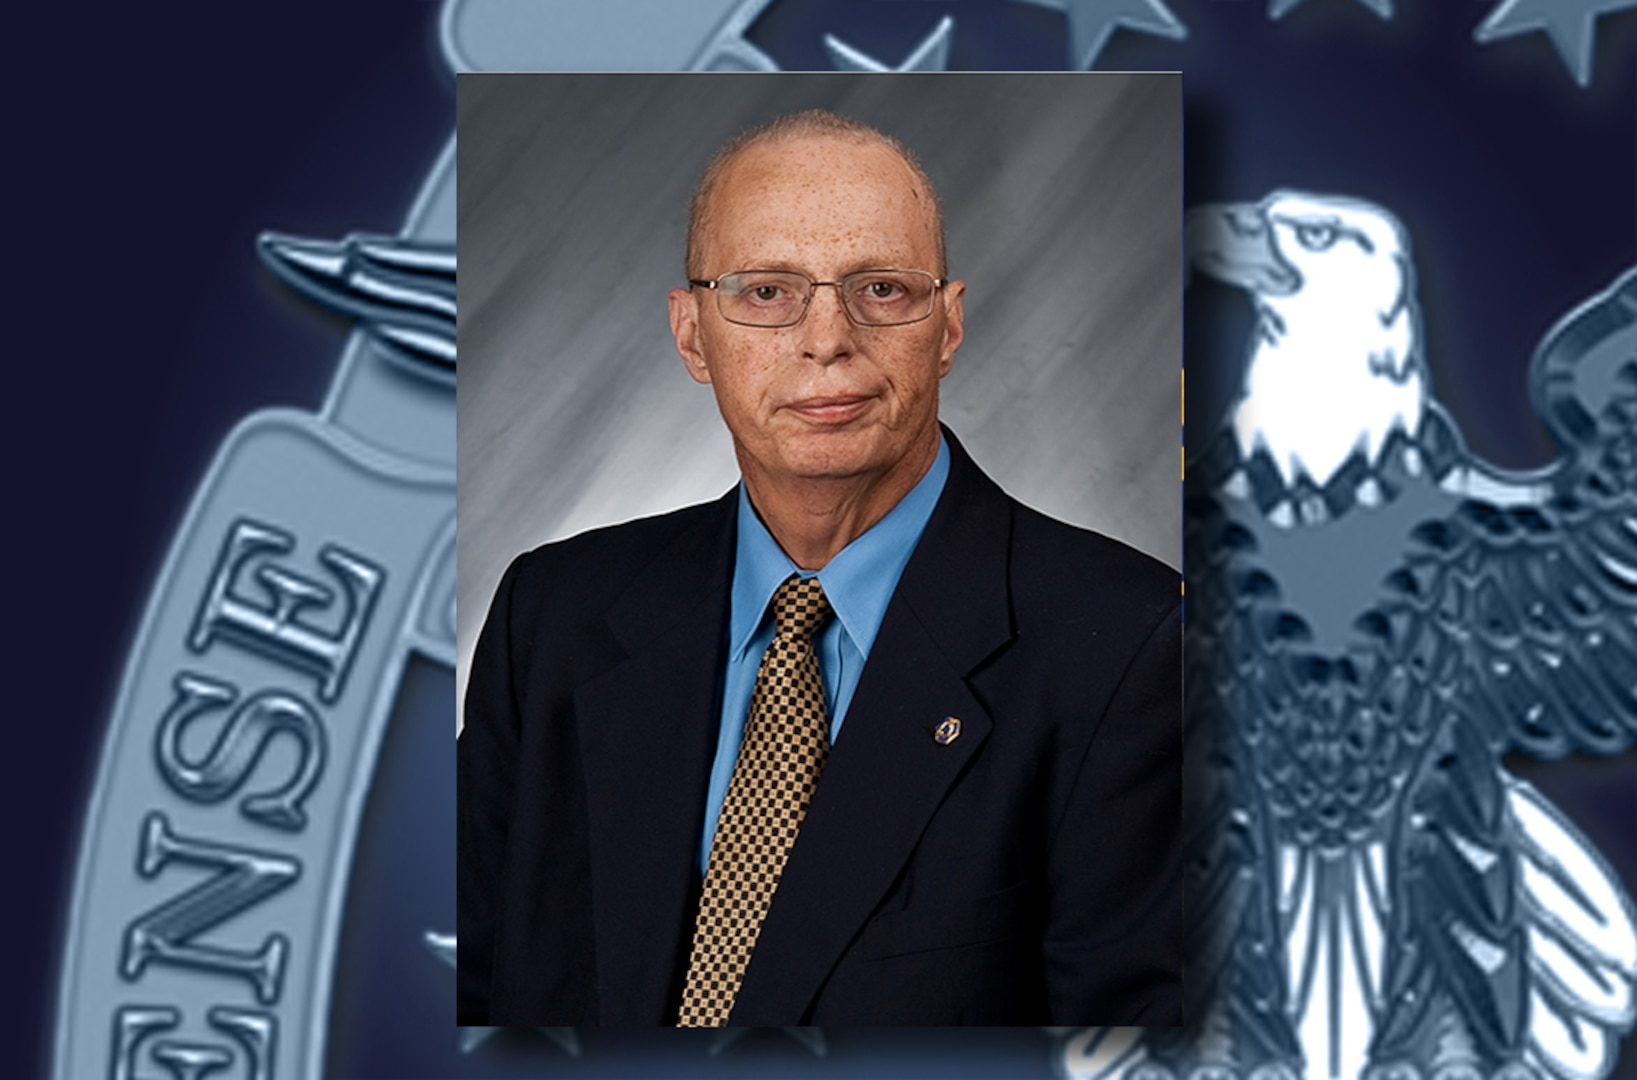 Ivan Hall will be inducted into the DLA Hall of Fame at the McNamara Headquarters Complex July 14 for his contributions to the development and implementation of long-term contracts at DLA Land and Maritime. Hall retired in 2009 as the director of land supplier operations at Defense Supply Center Columbus, Ohio.